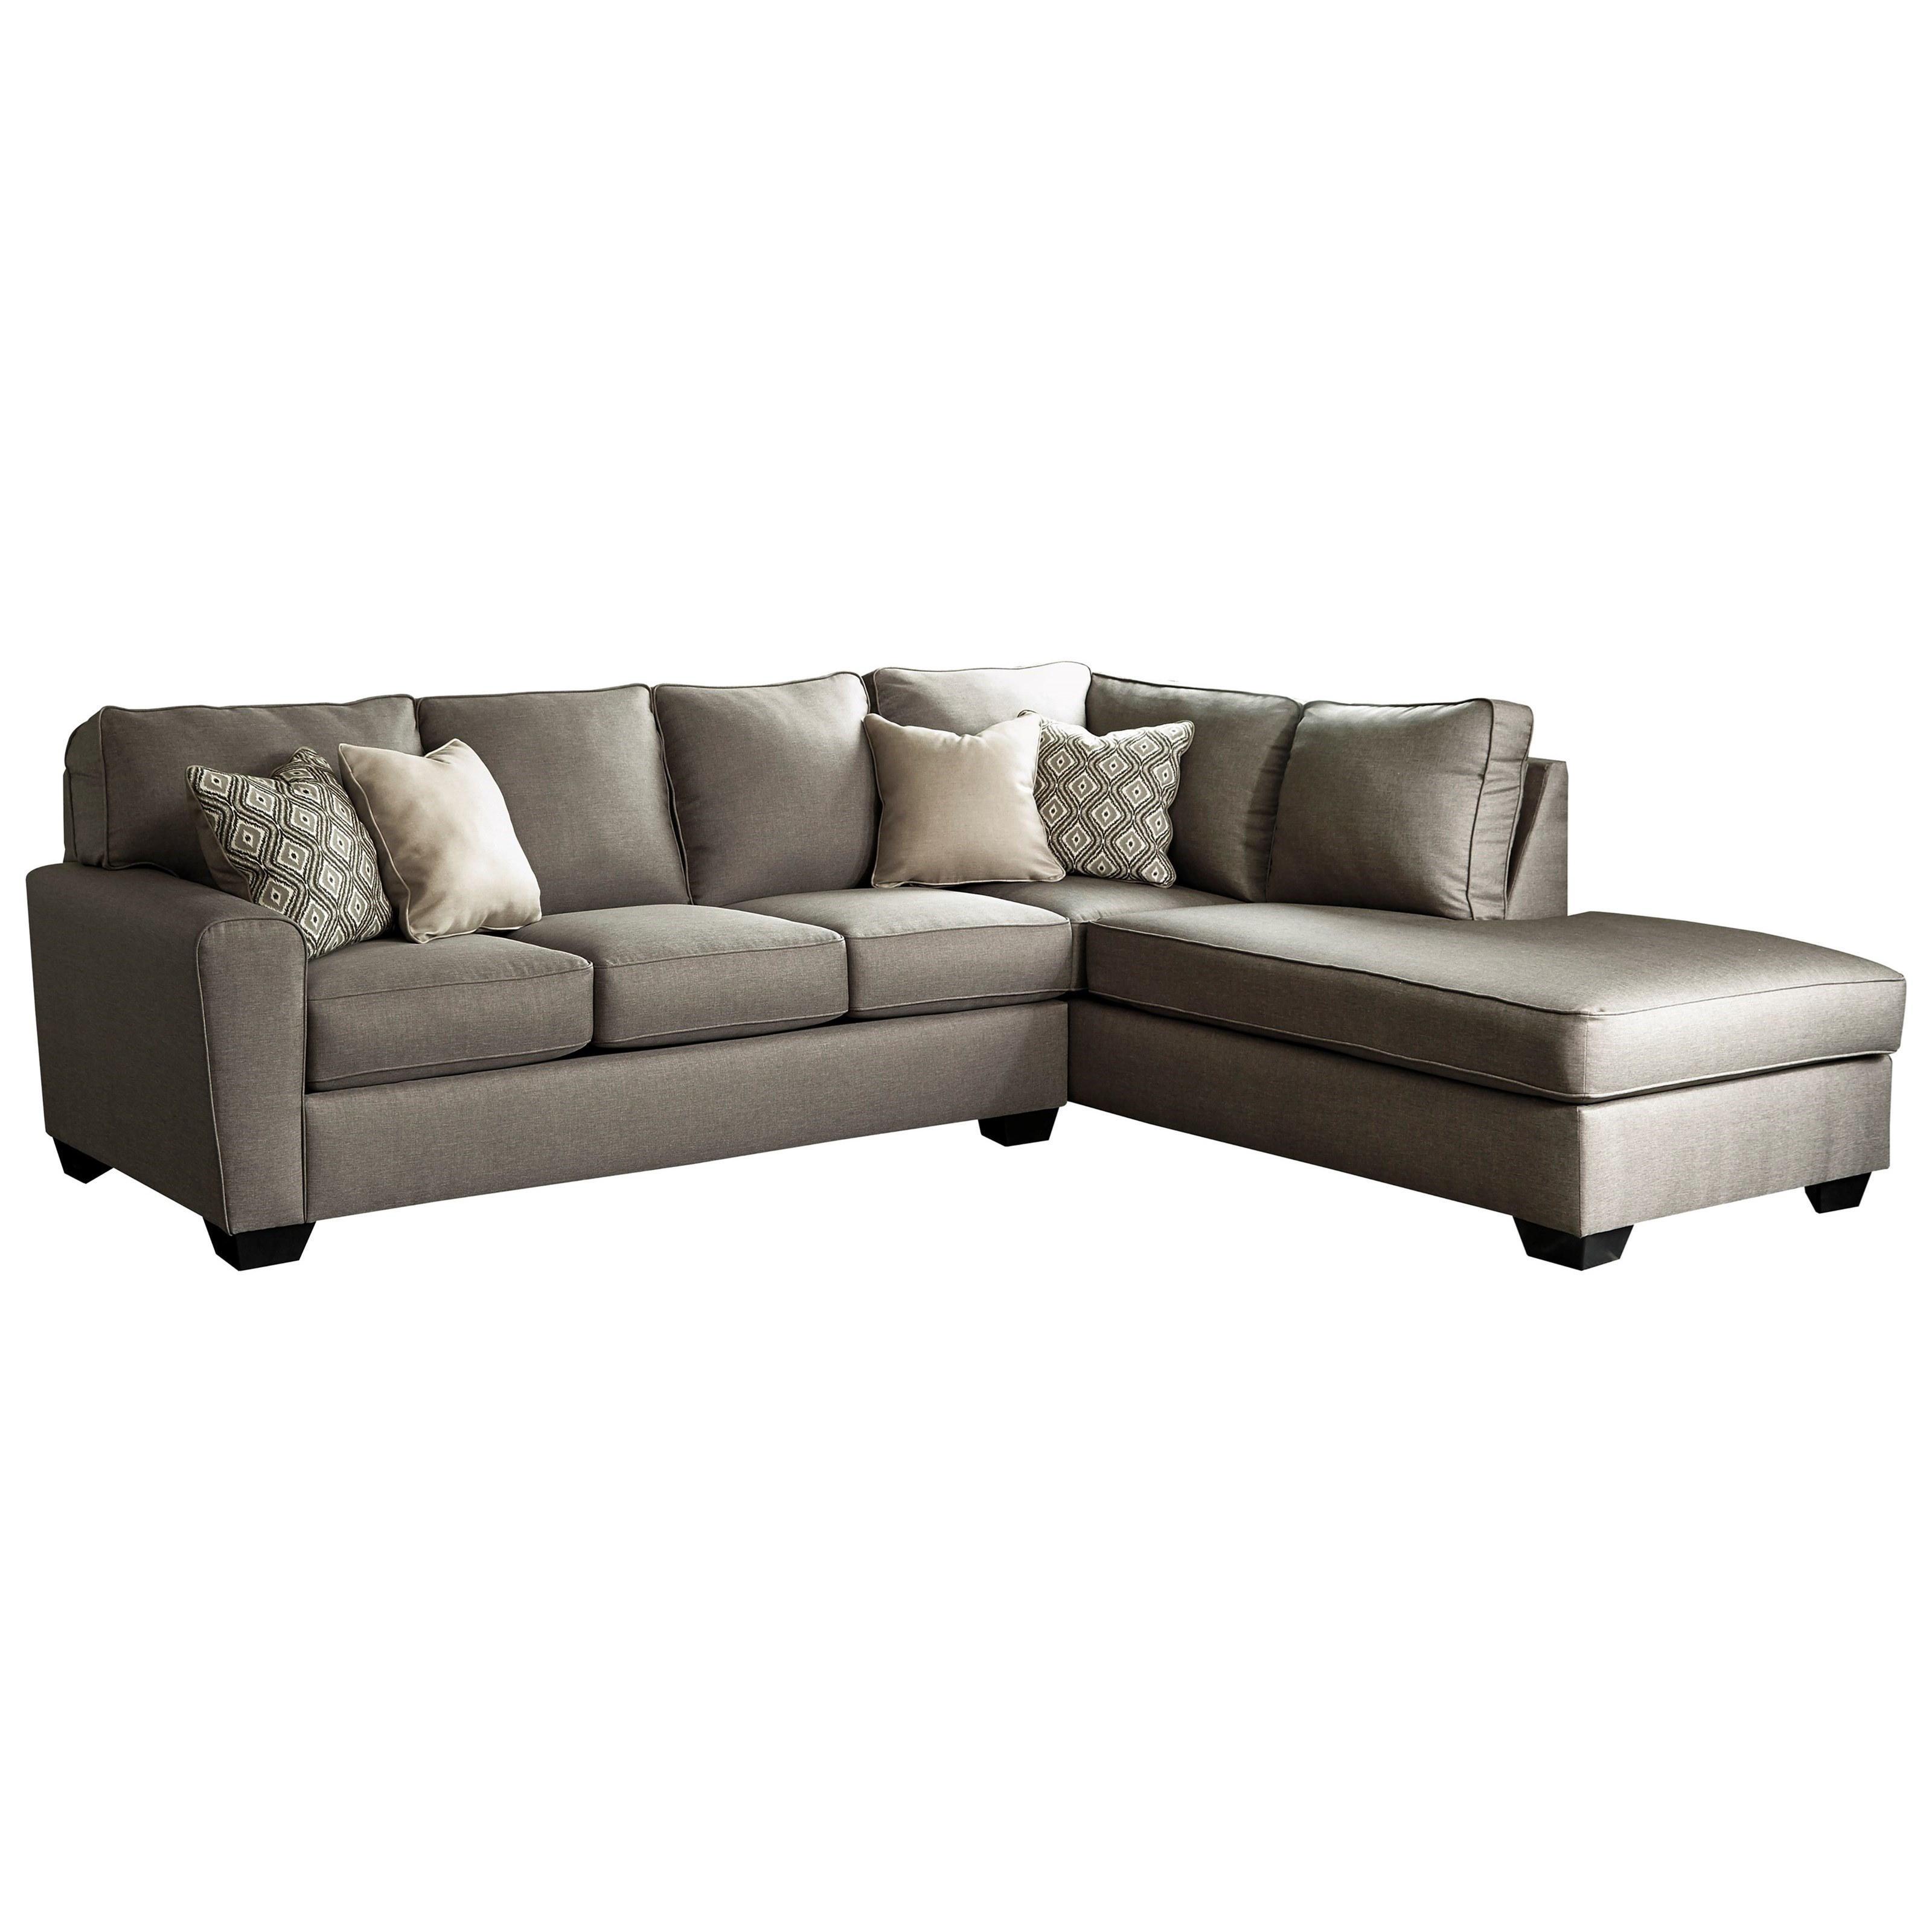 Benchcraft by ashley calicho contemporary sectional with for Ashley chaise lounge sofa